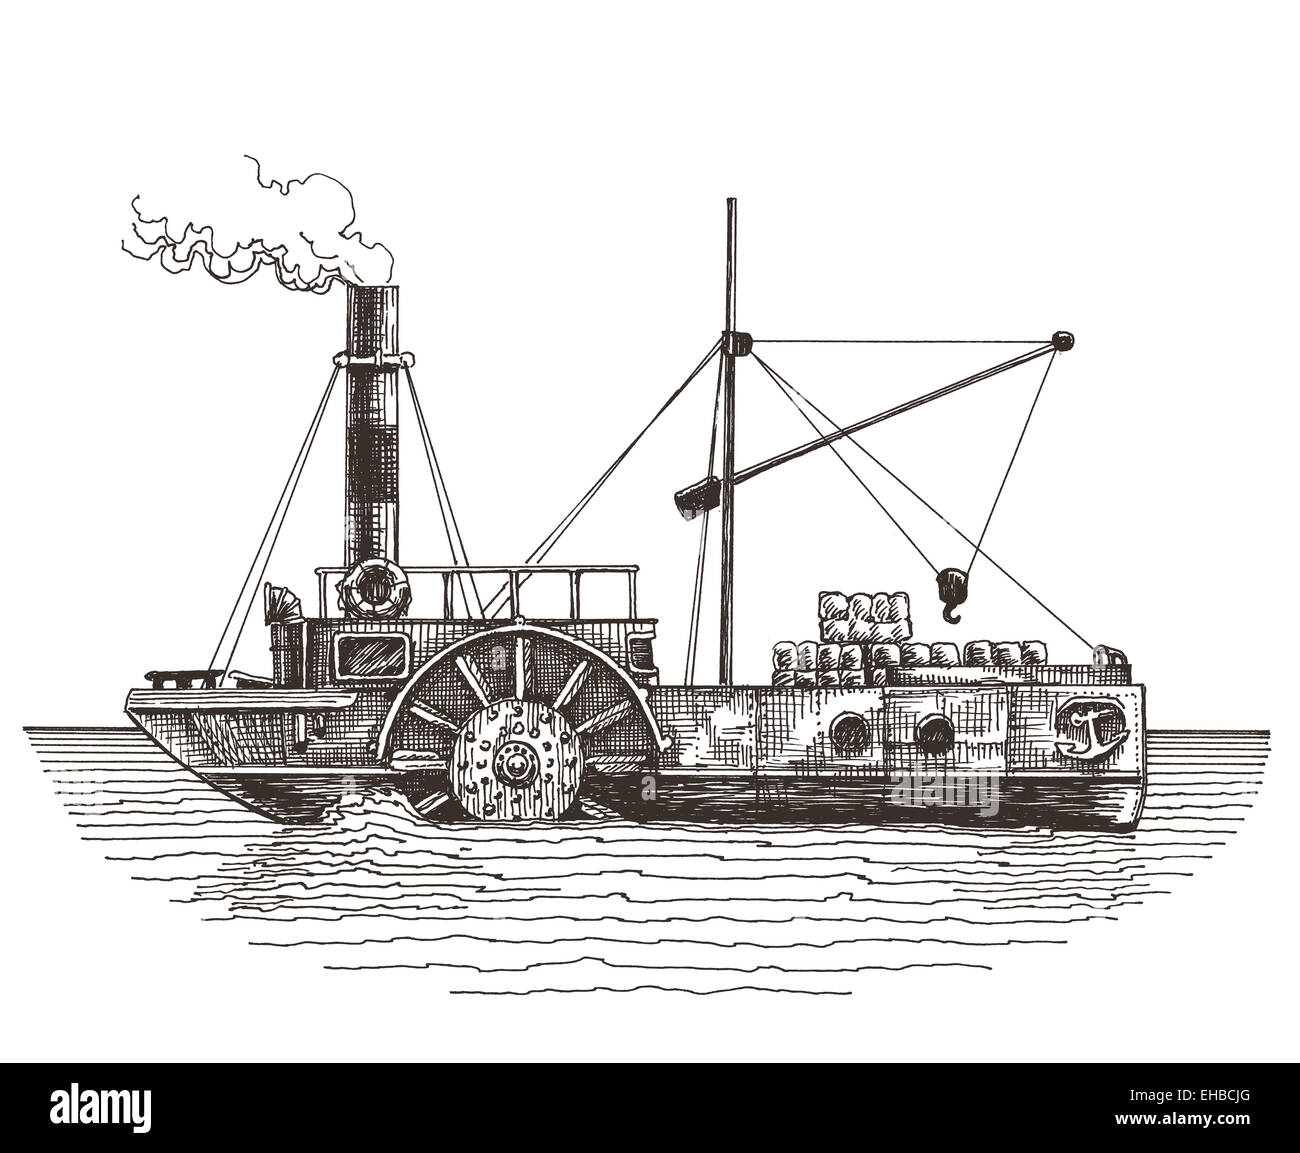 ship vector logo design template. steamboat or steamship icon. - Stock Image